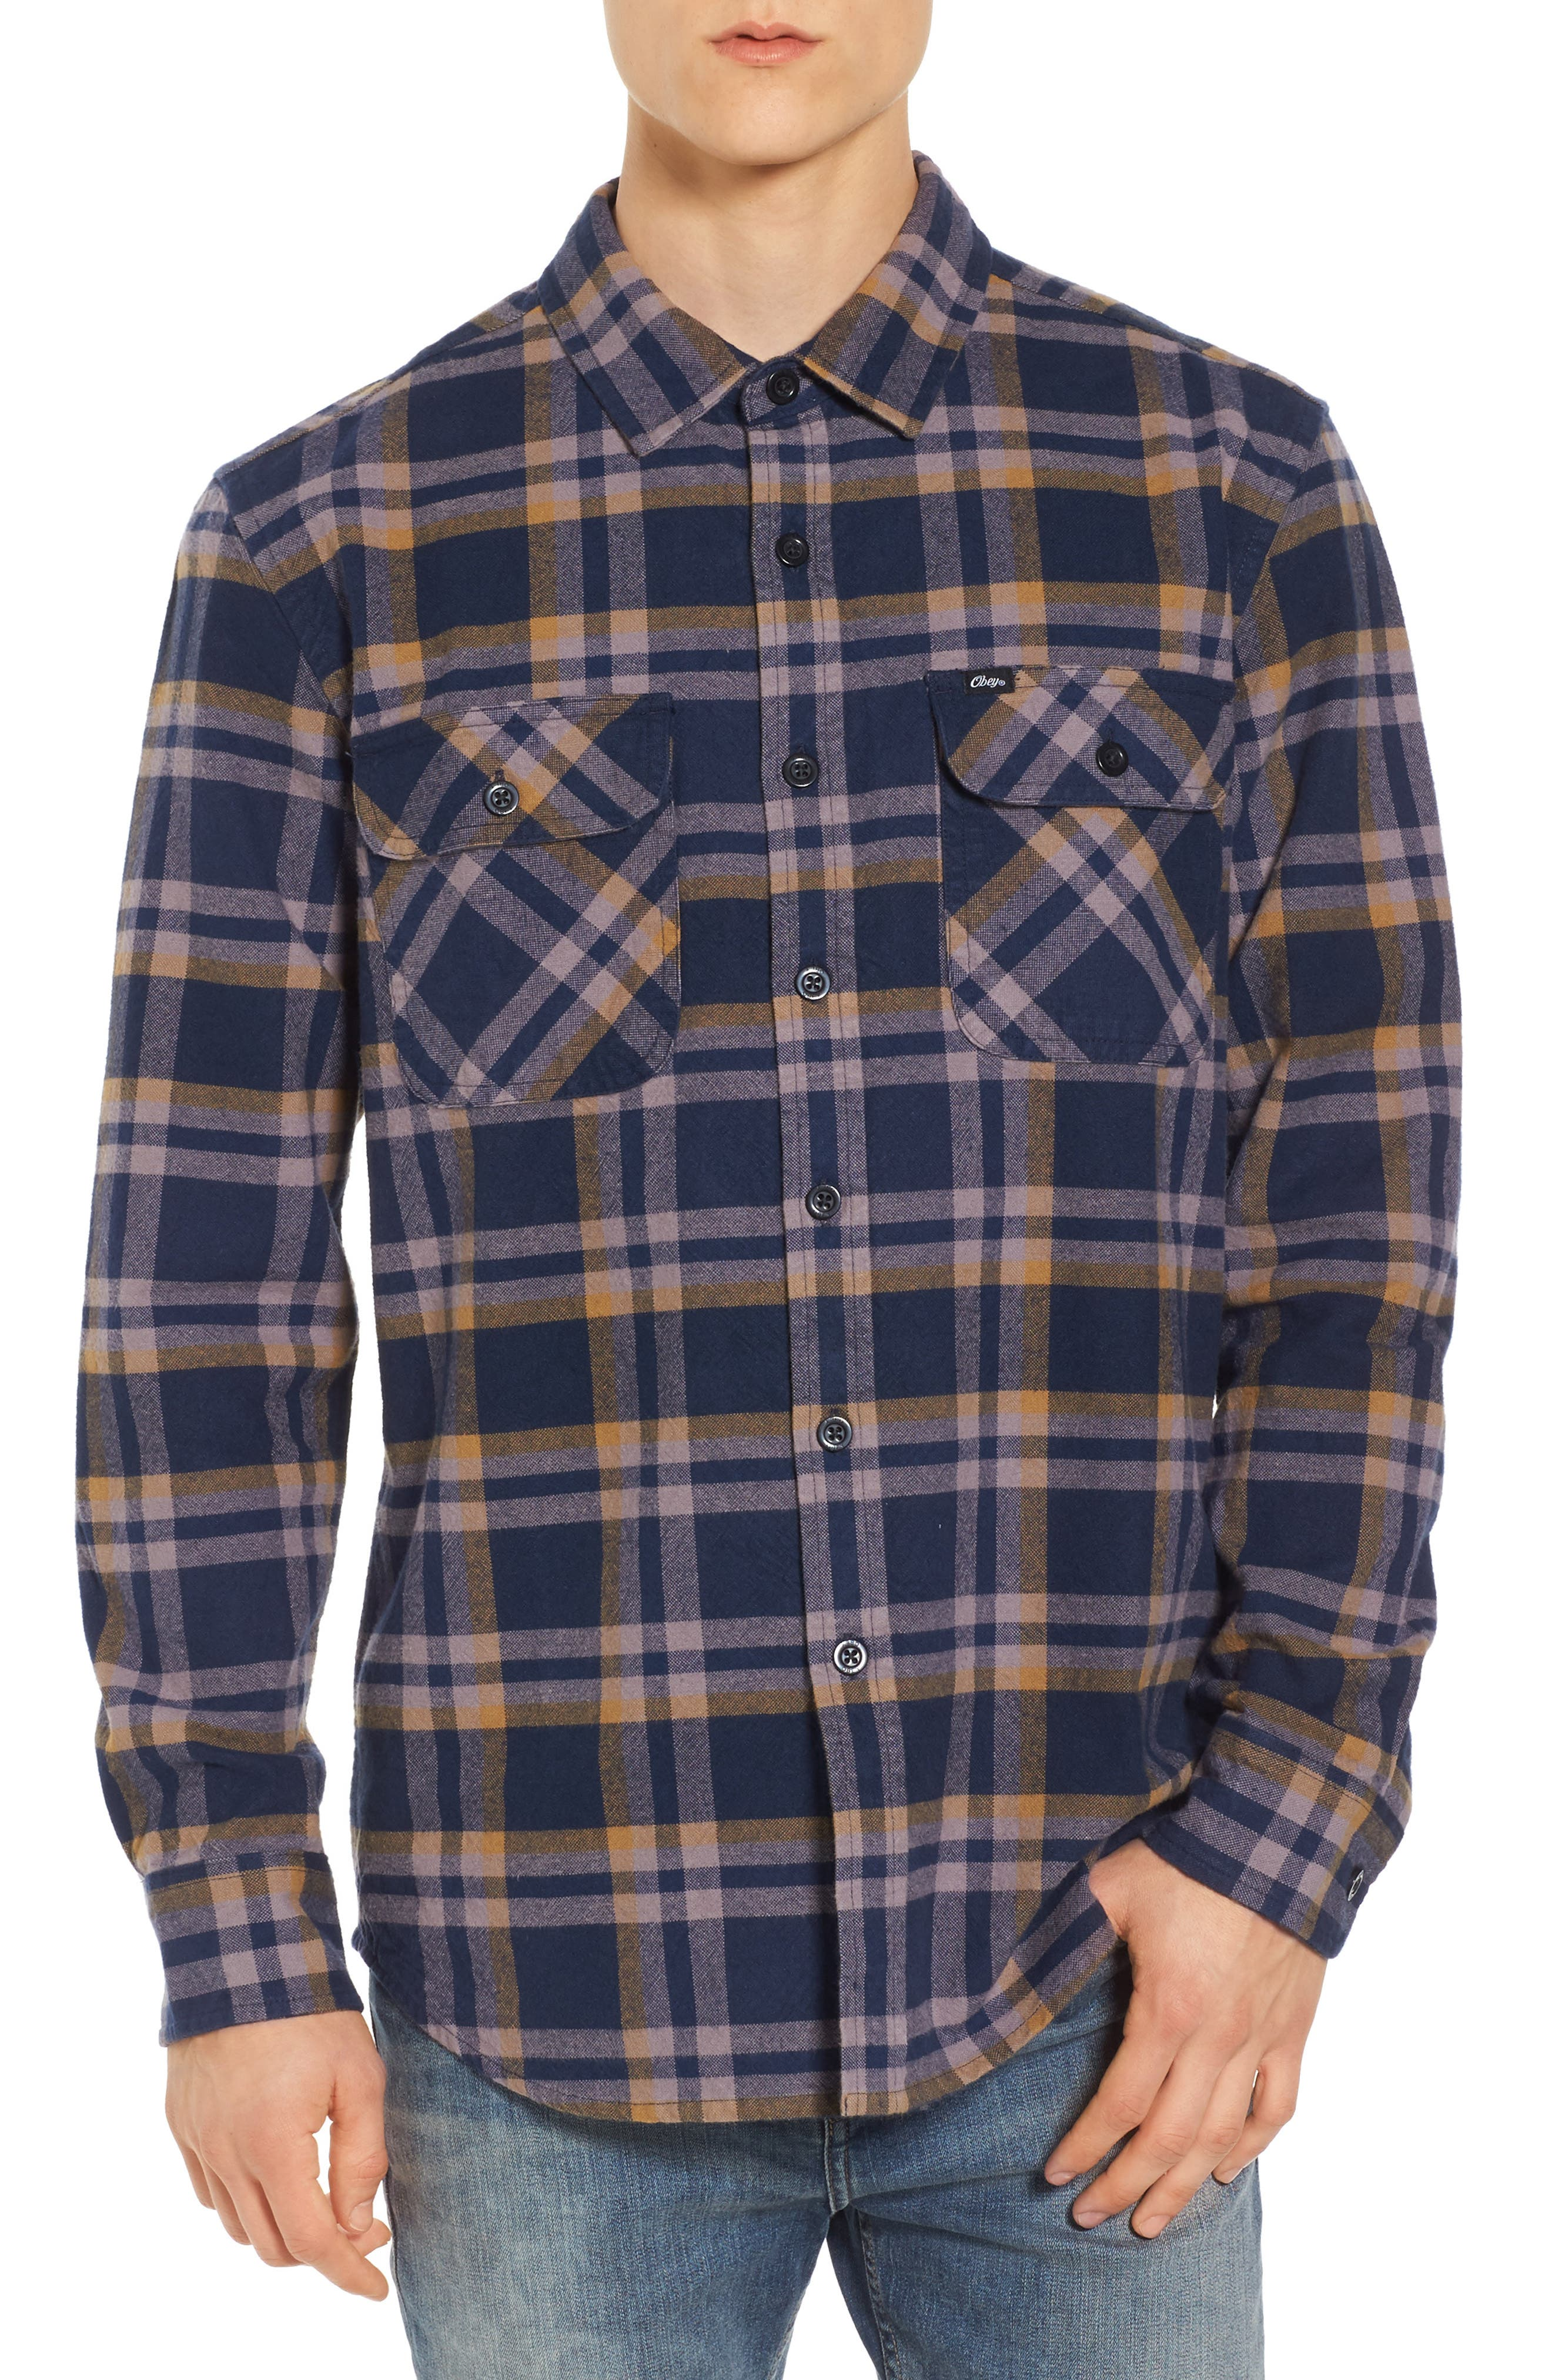 Main Image - Obey Plaid Flannel Shirt